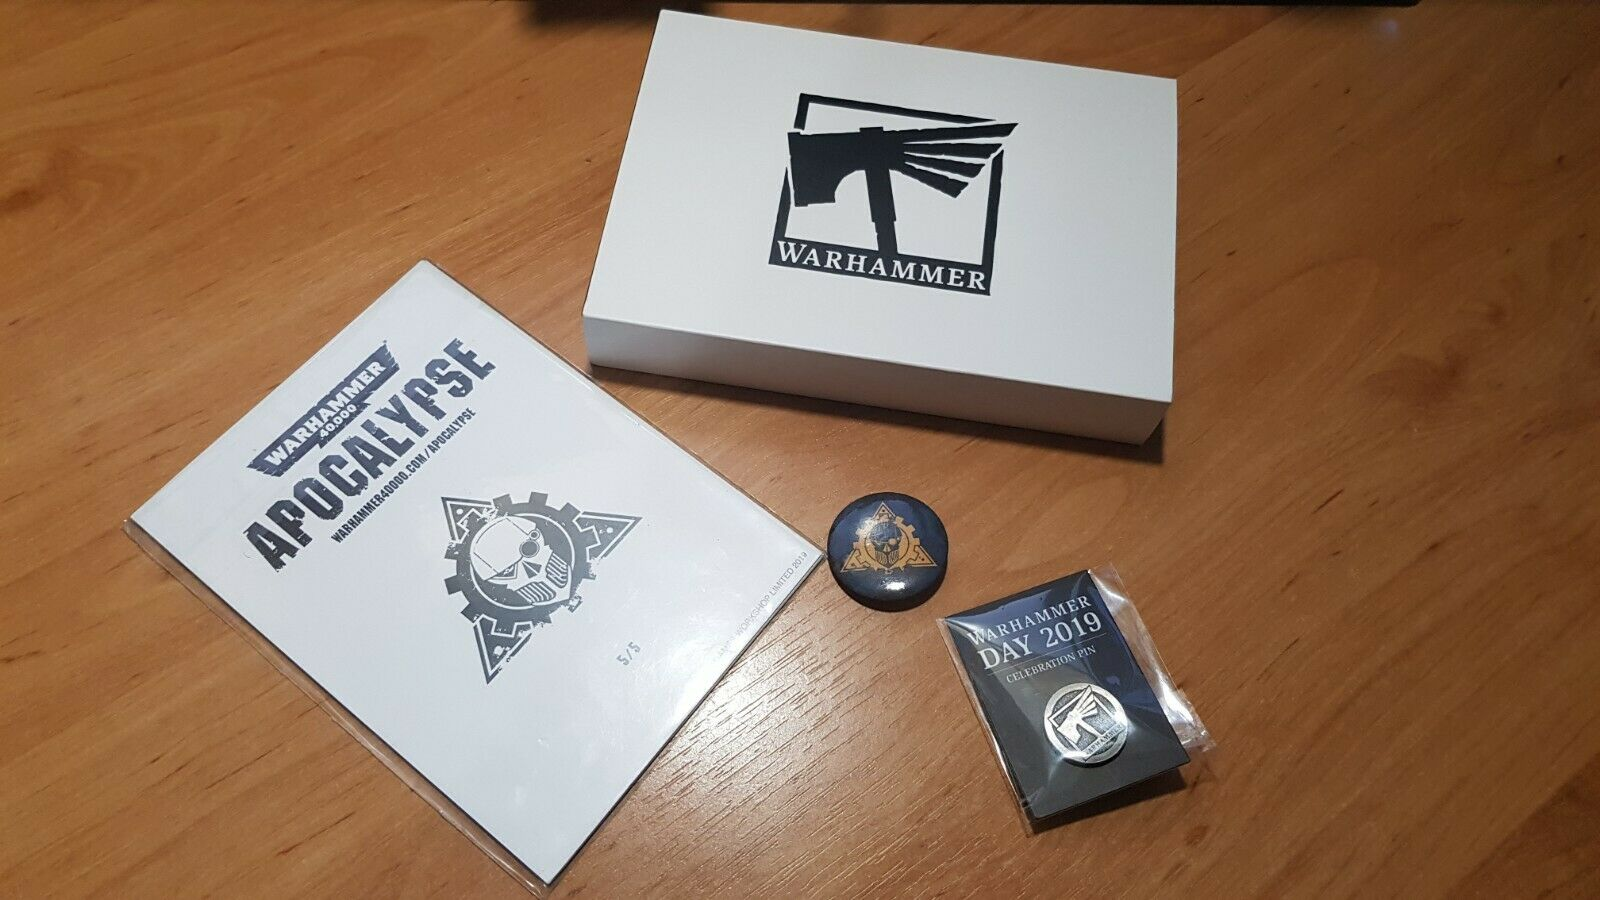 Limited Edition Warhammer jour 2019 objective Markers  Tokens & PINS  les ventes chaudes